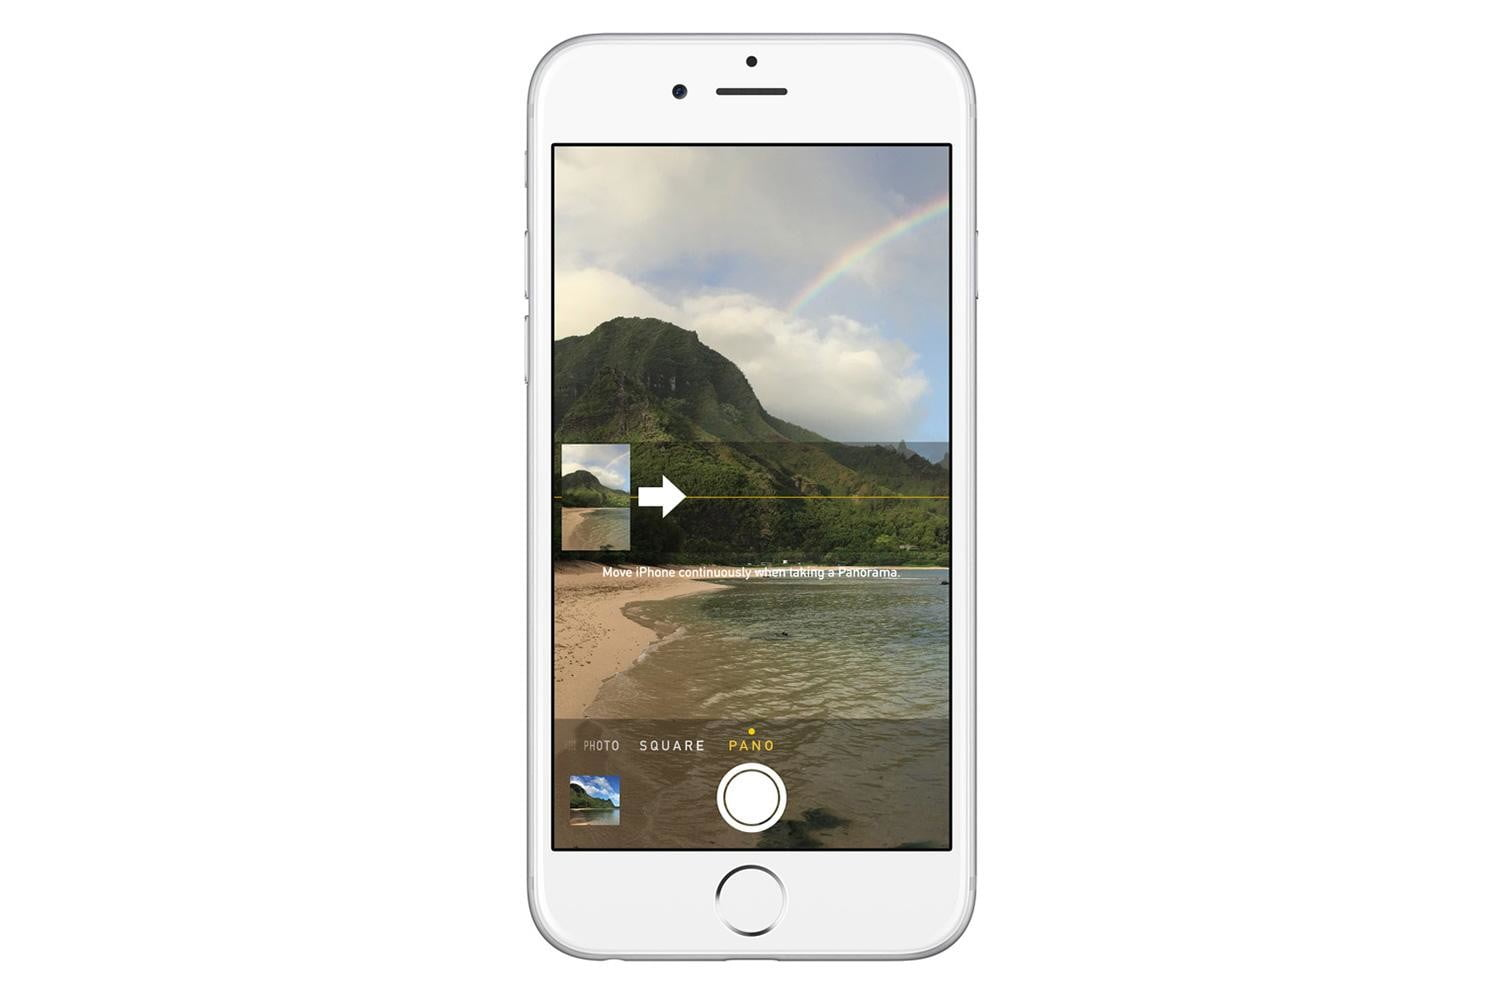 iphone 6 air features release rumors isight